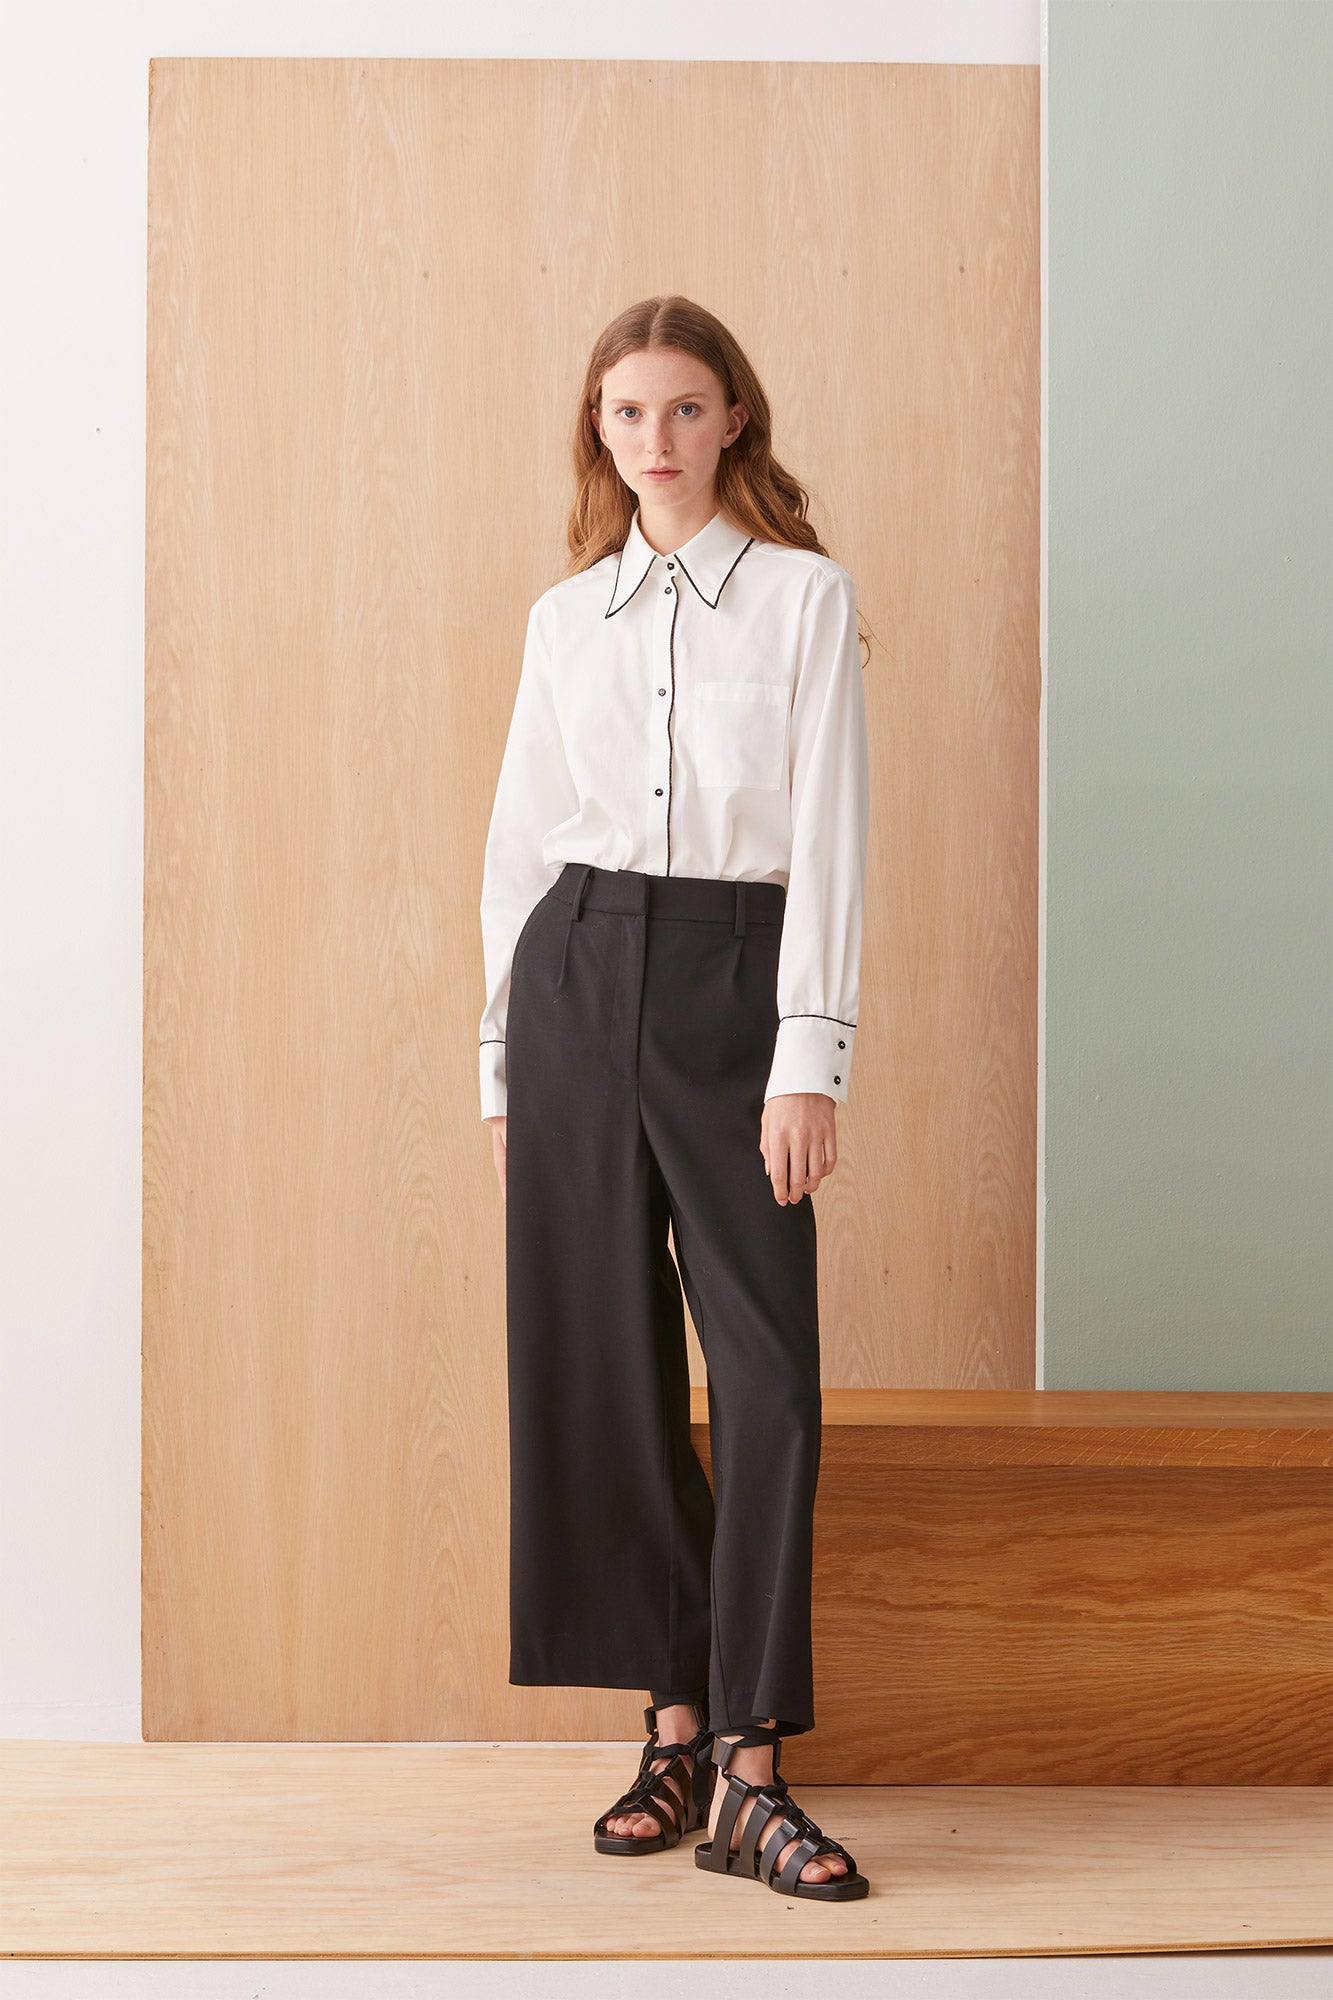 NZ Fashion Clothing Boutique gregorythelabel Gregory AW19 Portia Shirt Chalk Made in NZ